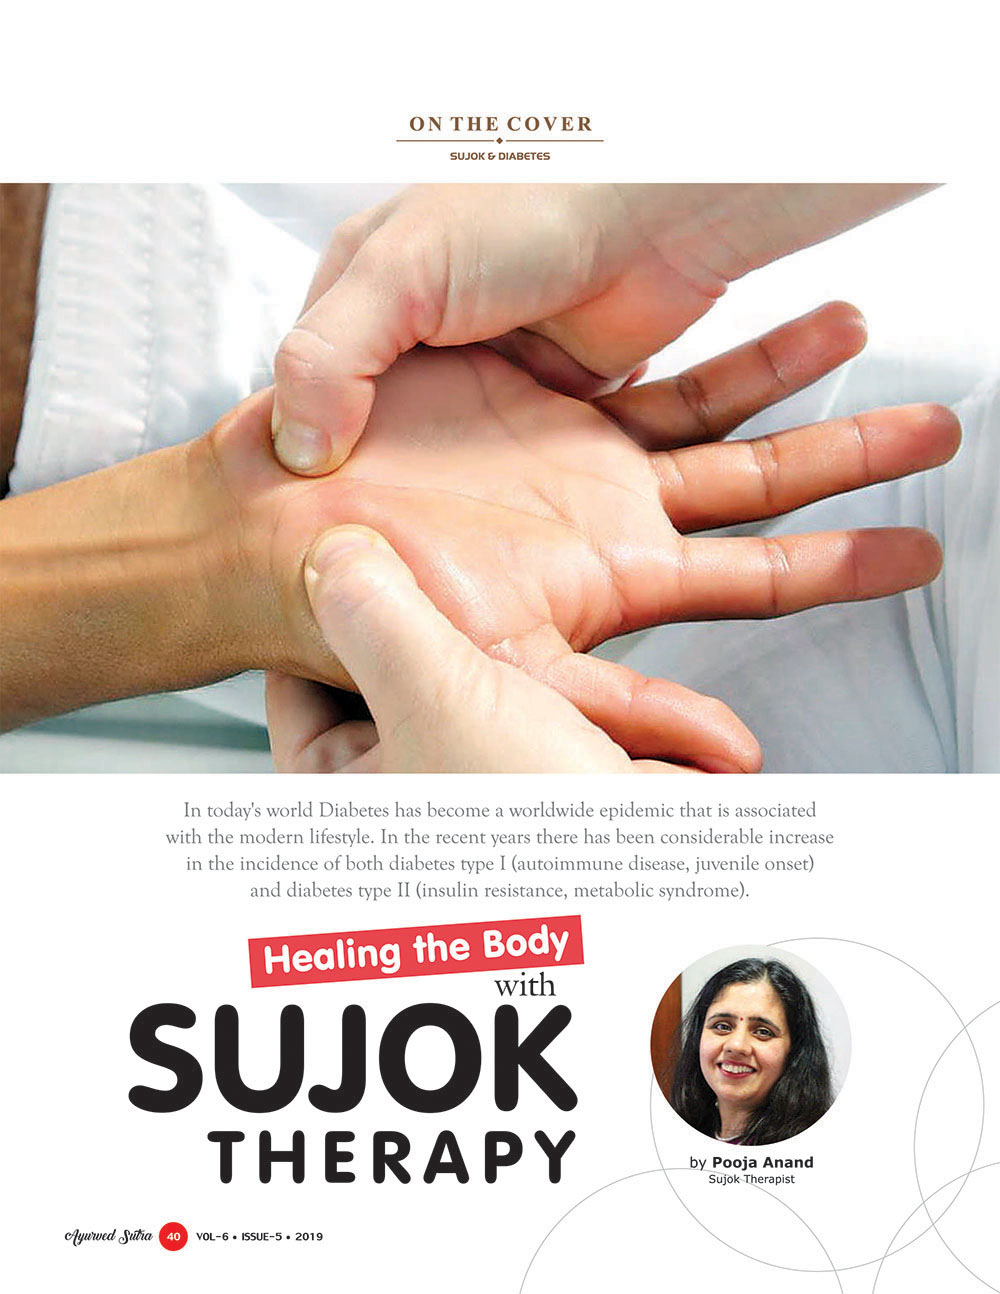 Ayurvedsutra Vol 06 issue 05 42 - Treating diabetes & Healing the Body with Sujok Therapy